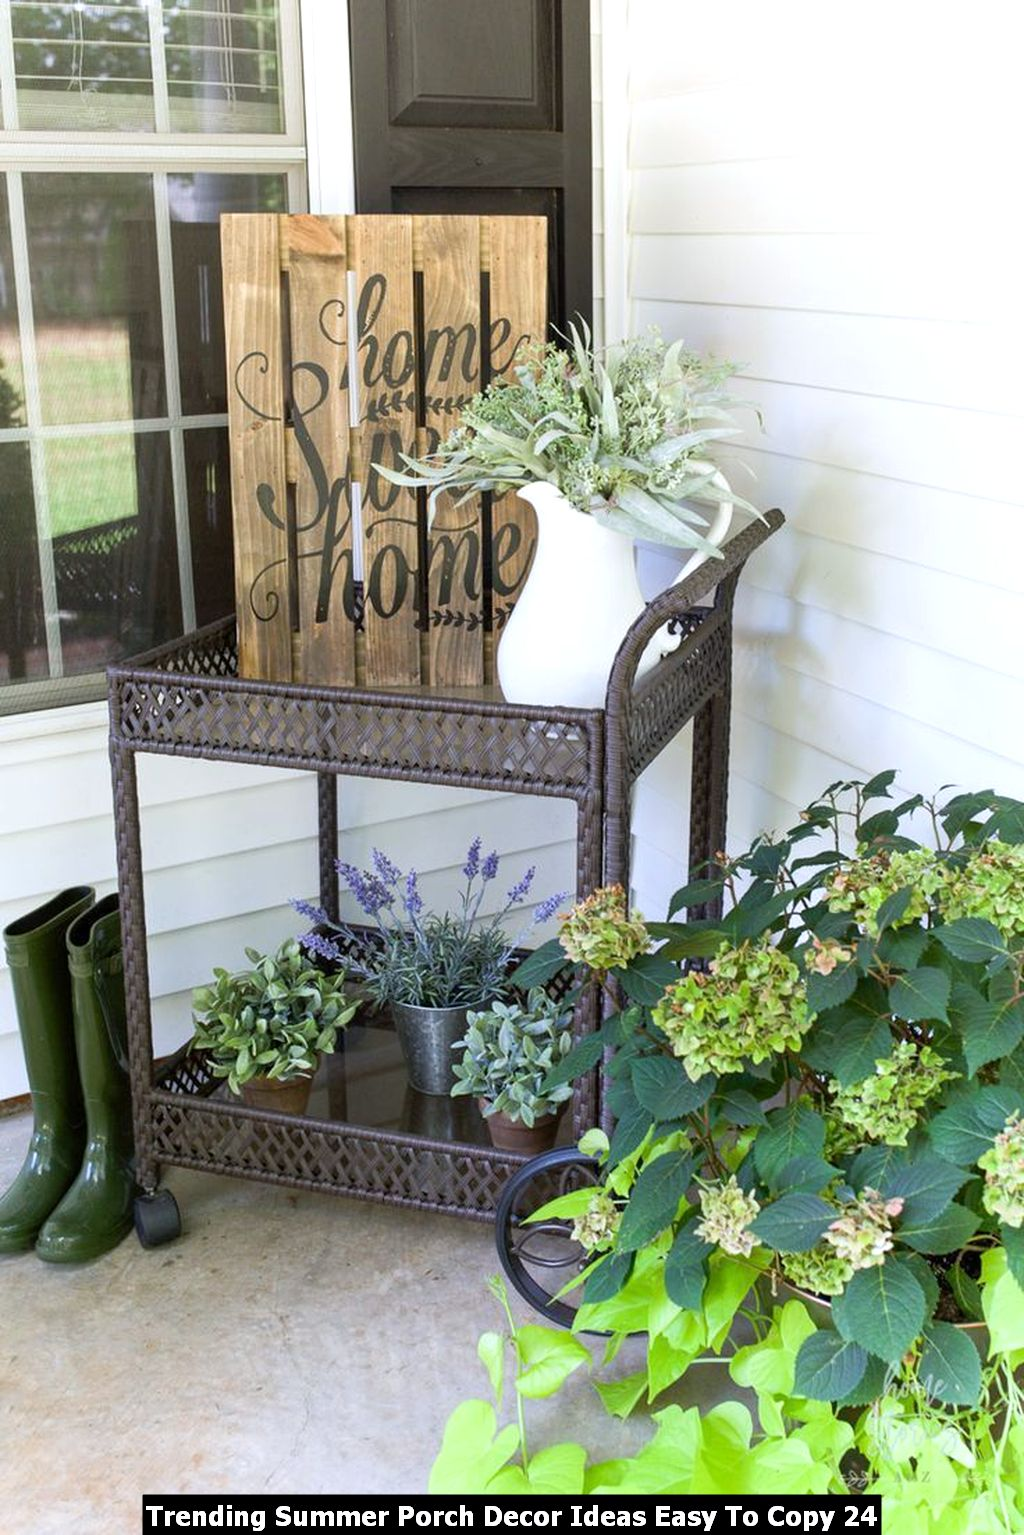 Trending Summer Porch Decor Ideas Easy To Copy 24